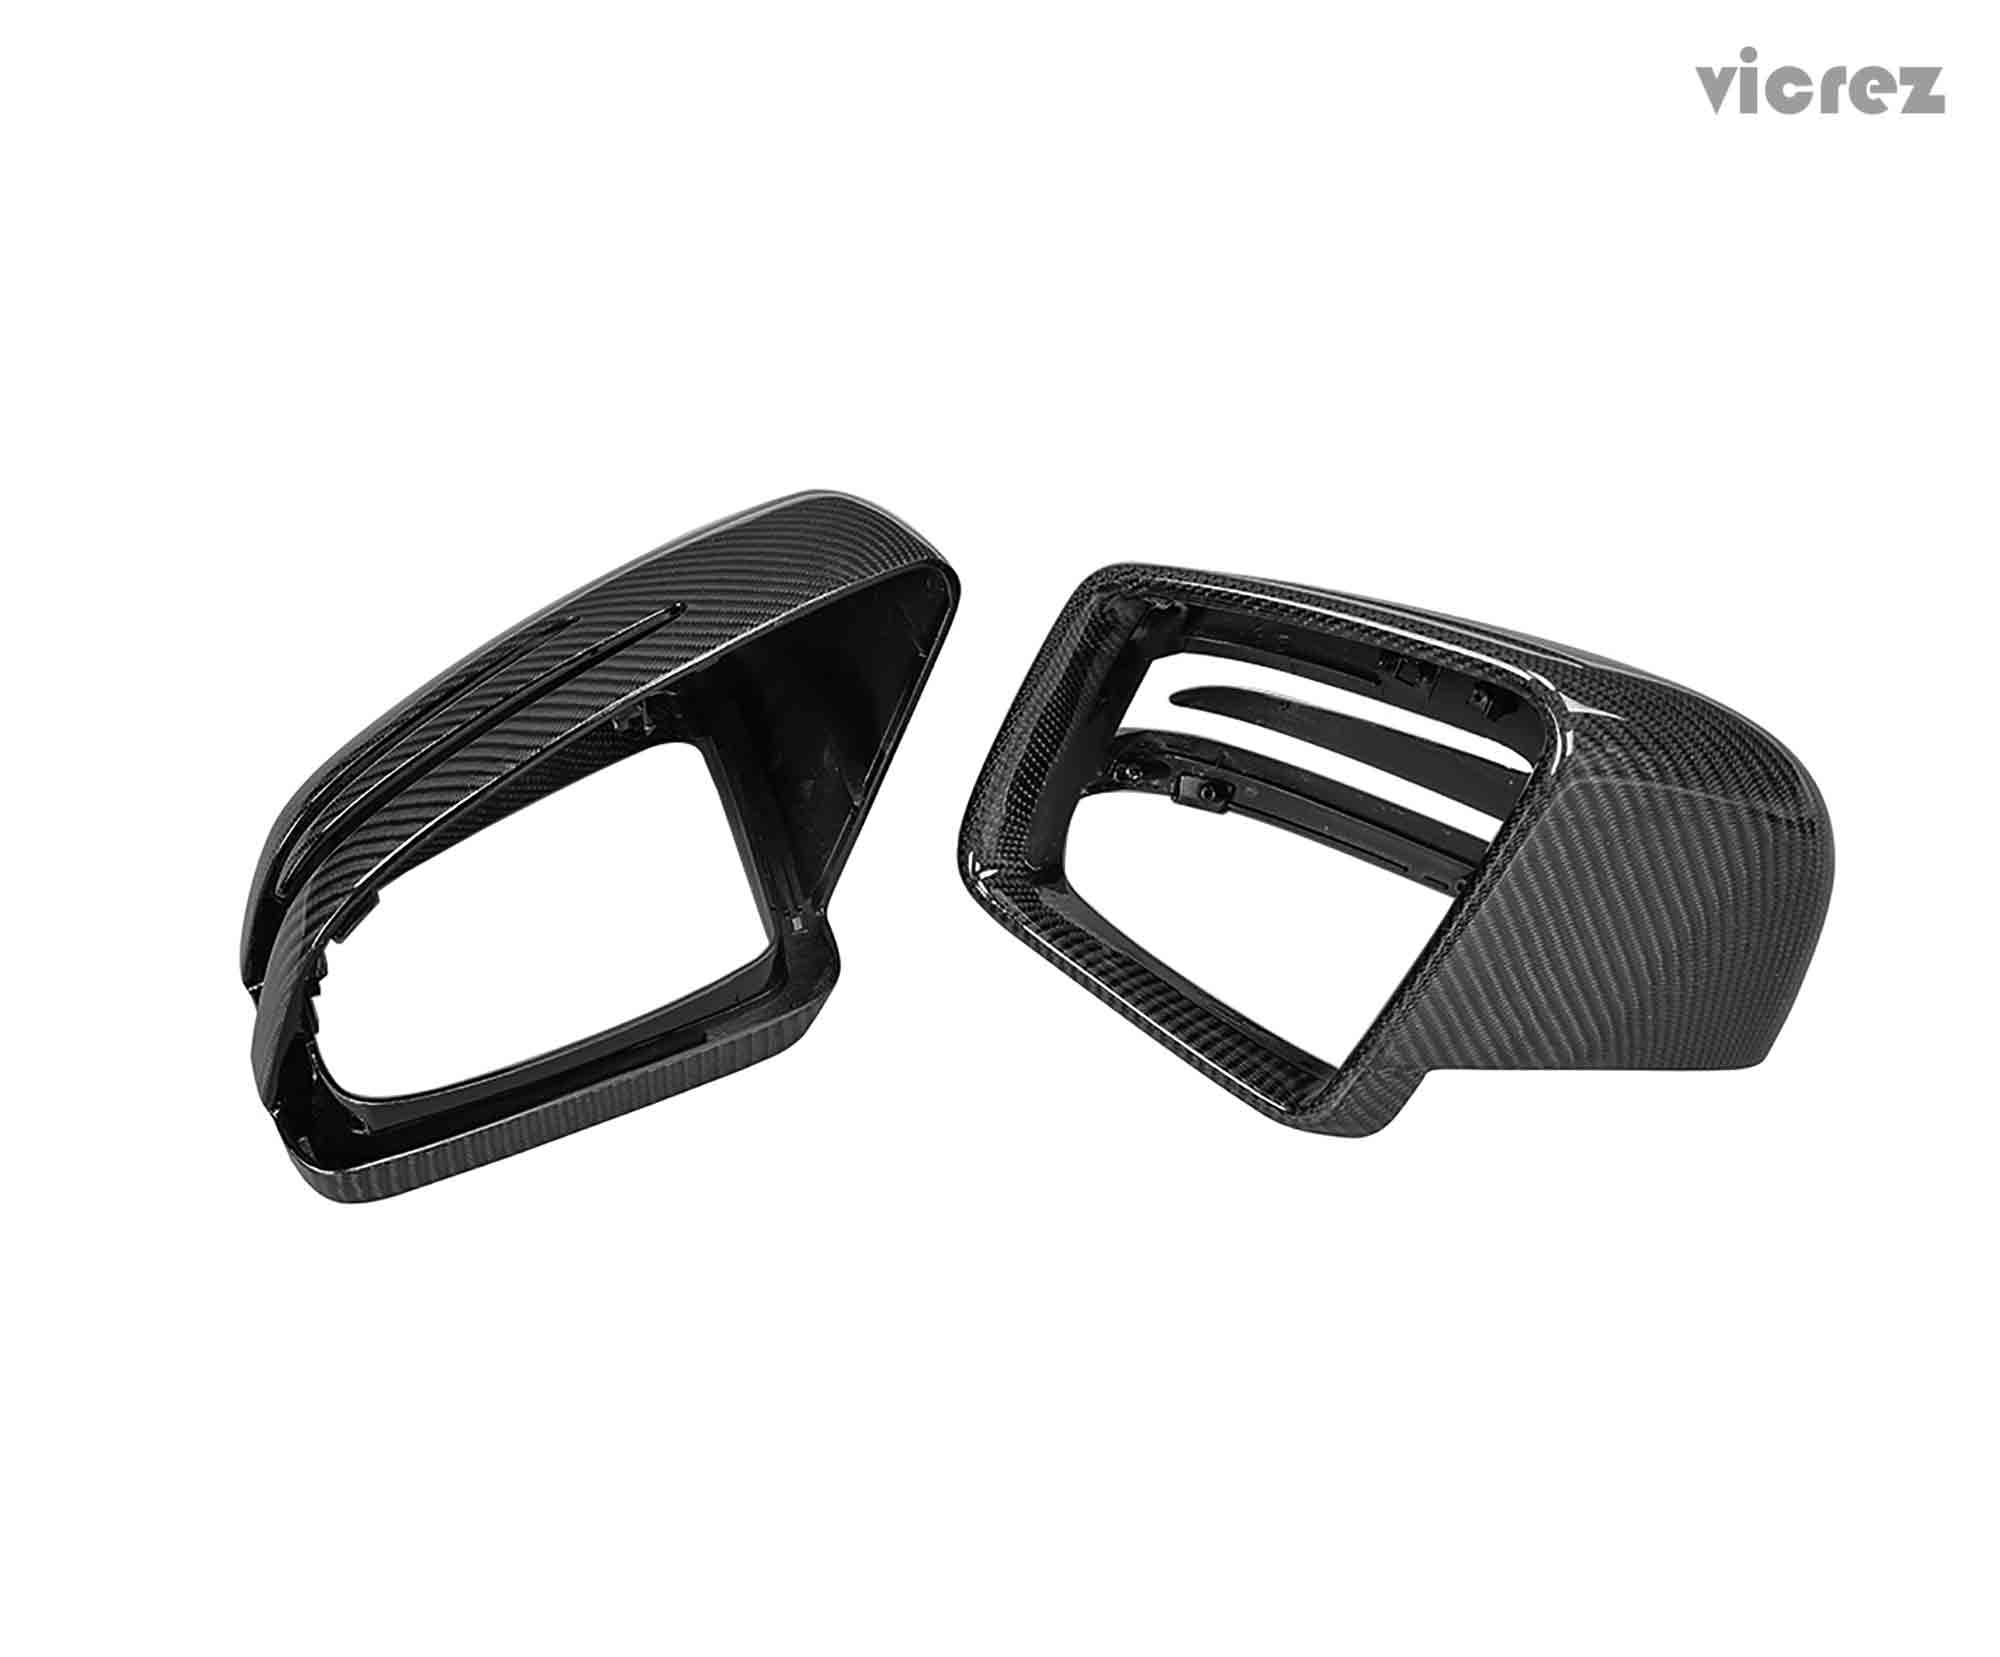 Carbon Fiber Mirror Covers fit for Mercedes Benz W463 G500 W166 ML350 GL350